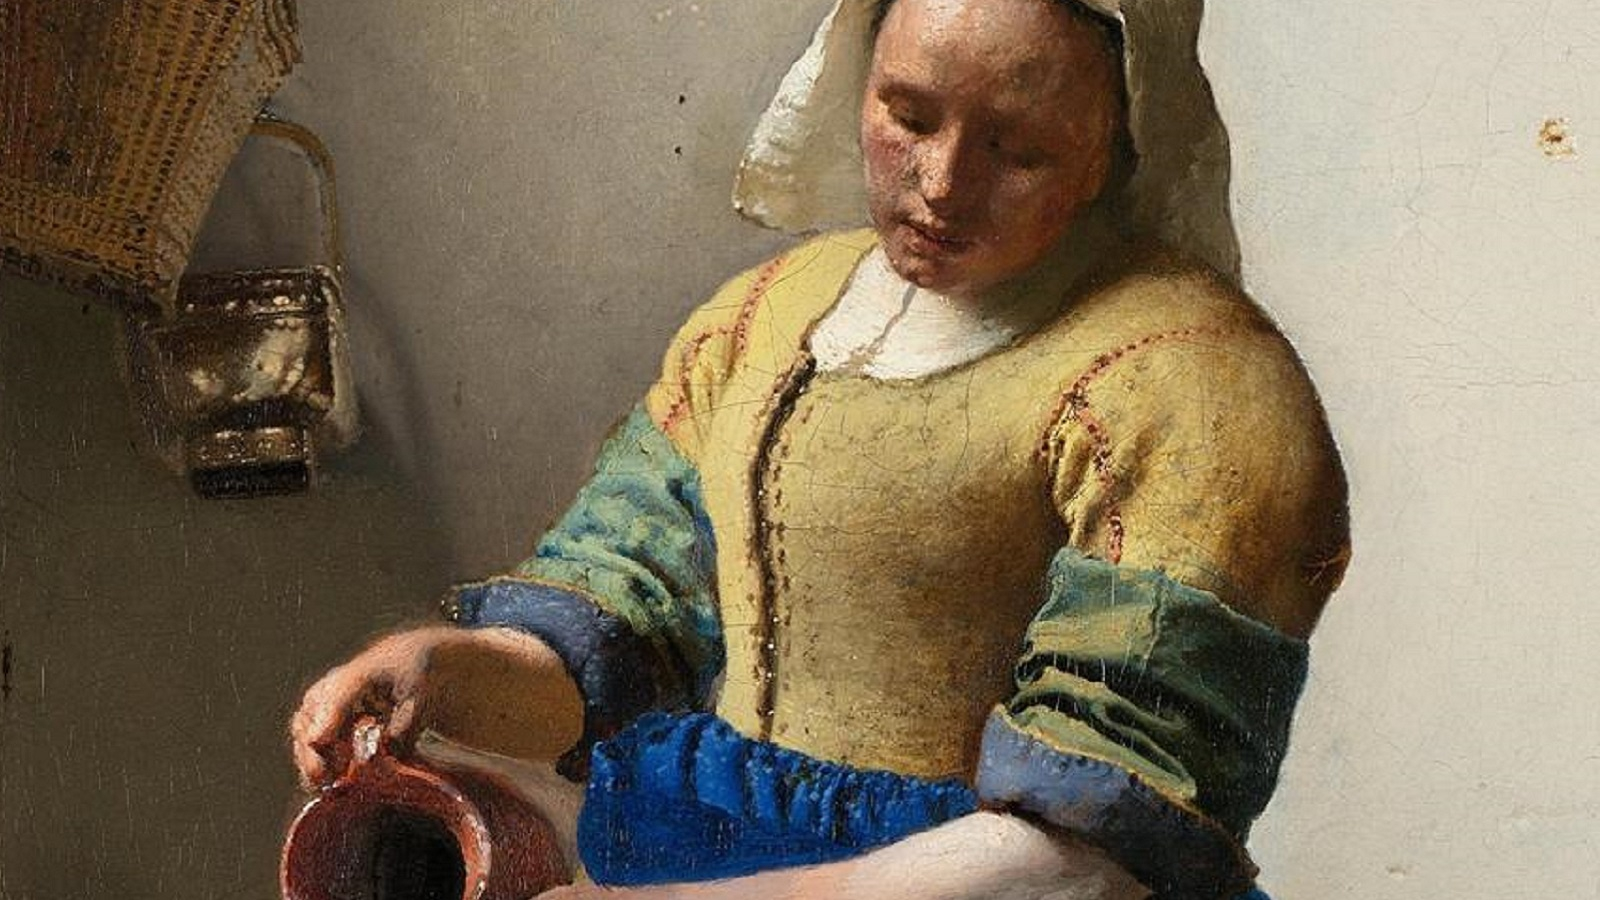 Vermeer, Beyond Time - portrait of the artist as a Dutchman